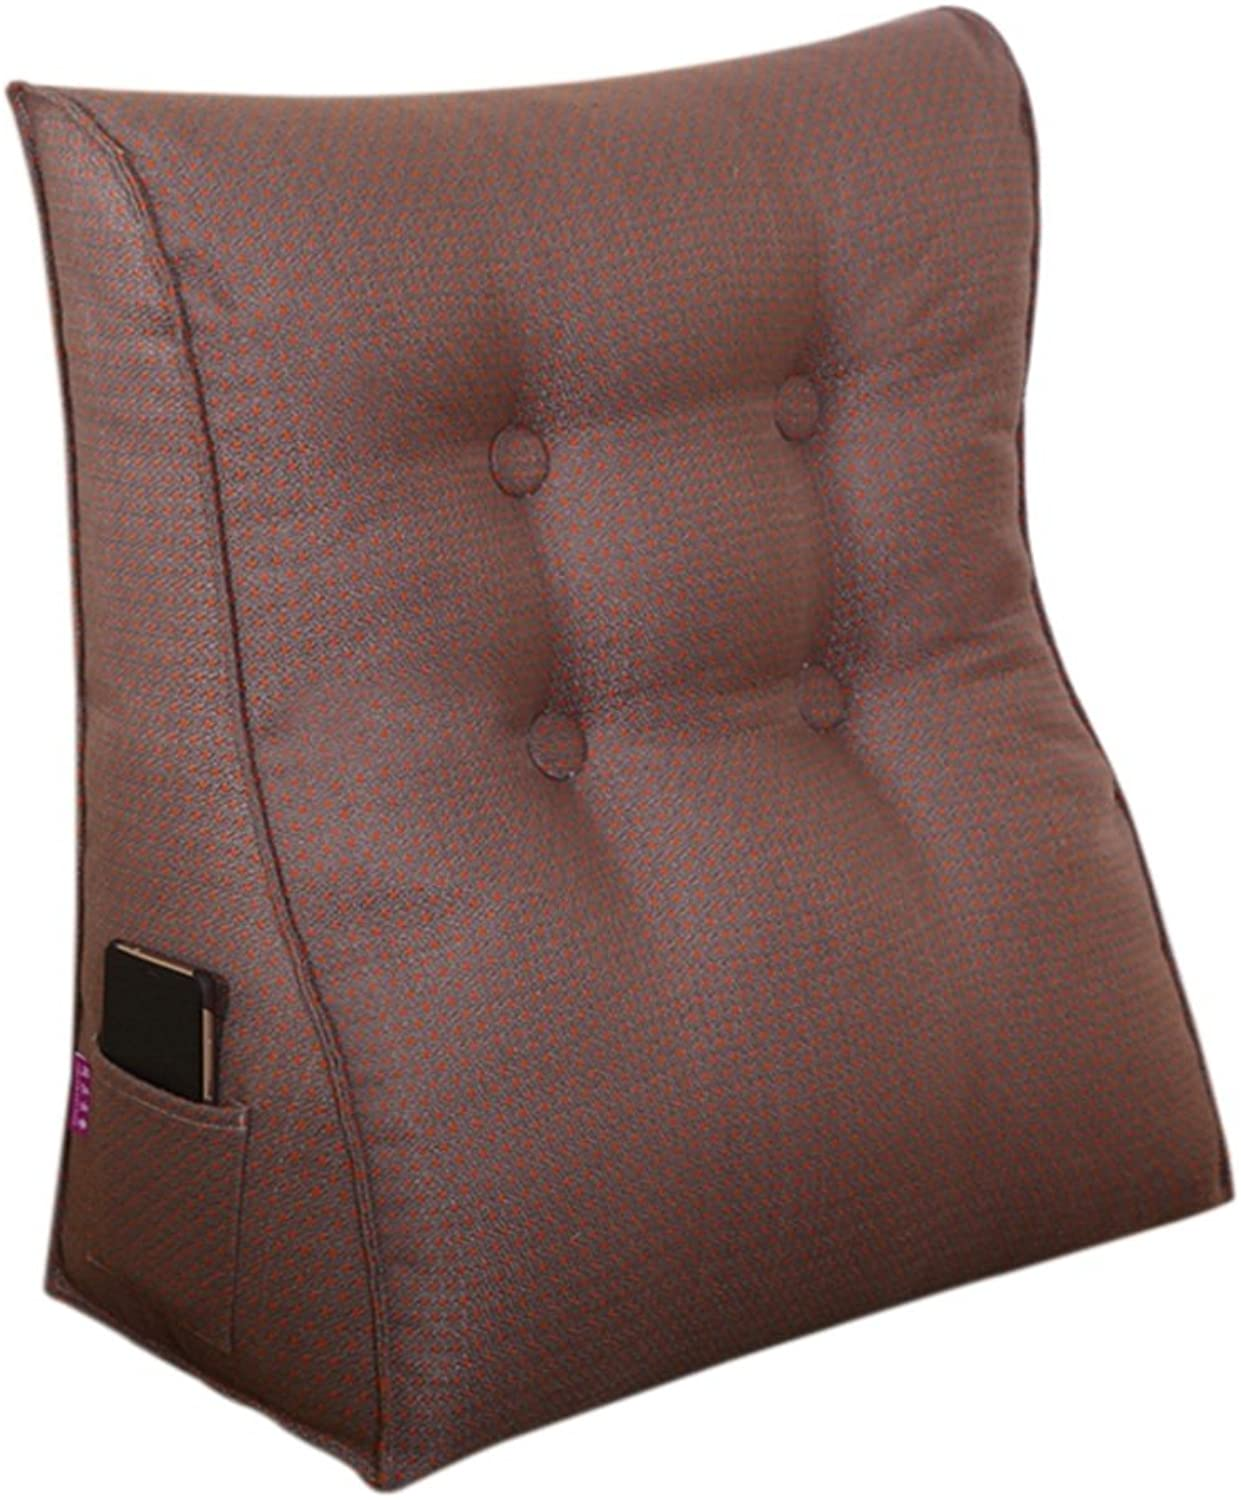 RFJJAL Lumbar Cushion Back Support Pillow Reading Pillow for Bed Backrest Sofa for Back Pain (color   C, Size   45  50  20cm)